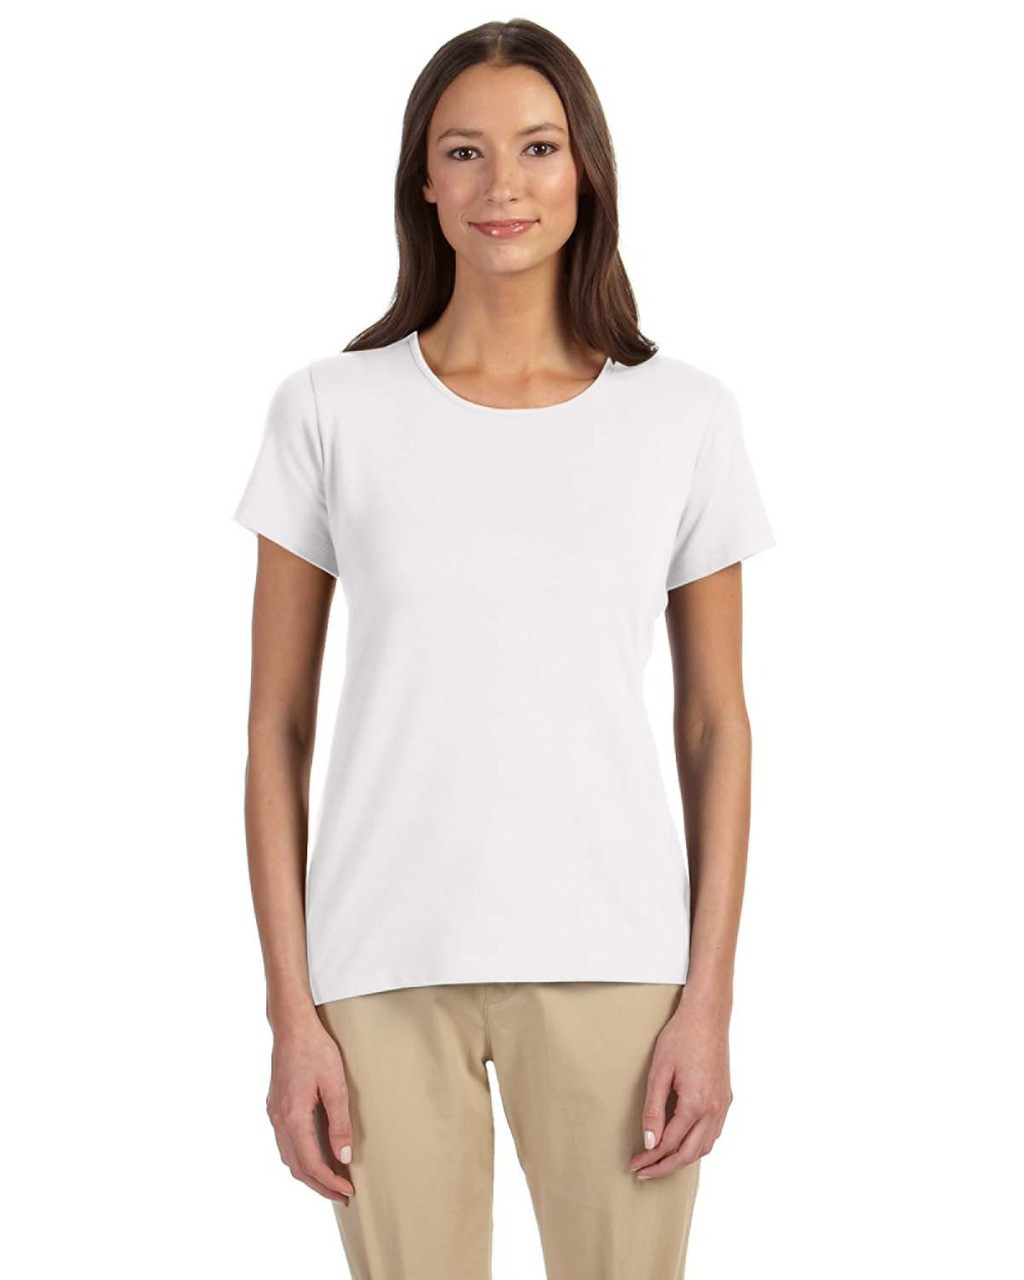 White - DP182W Devon & Jones Ladies' Perfect Fit™ Shell T-Shirt | Blankclothing.ca